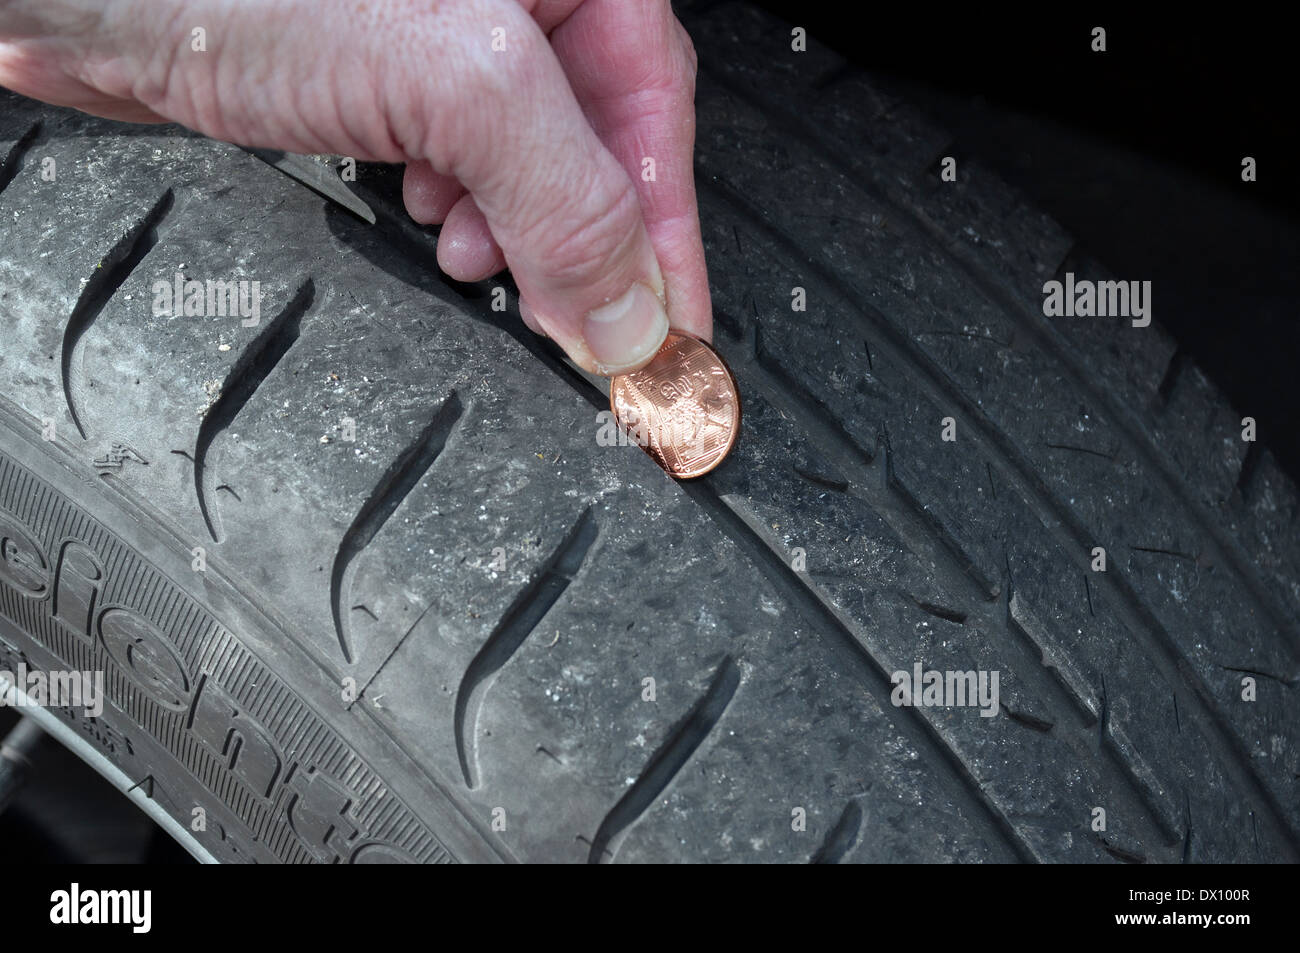 checking the tread depth on car tyre using a coin - Stock Image